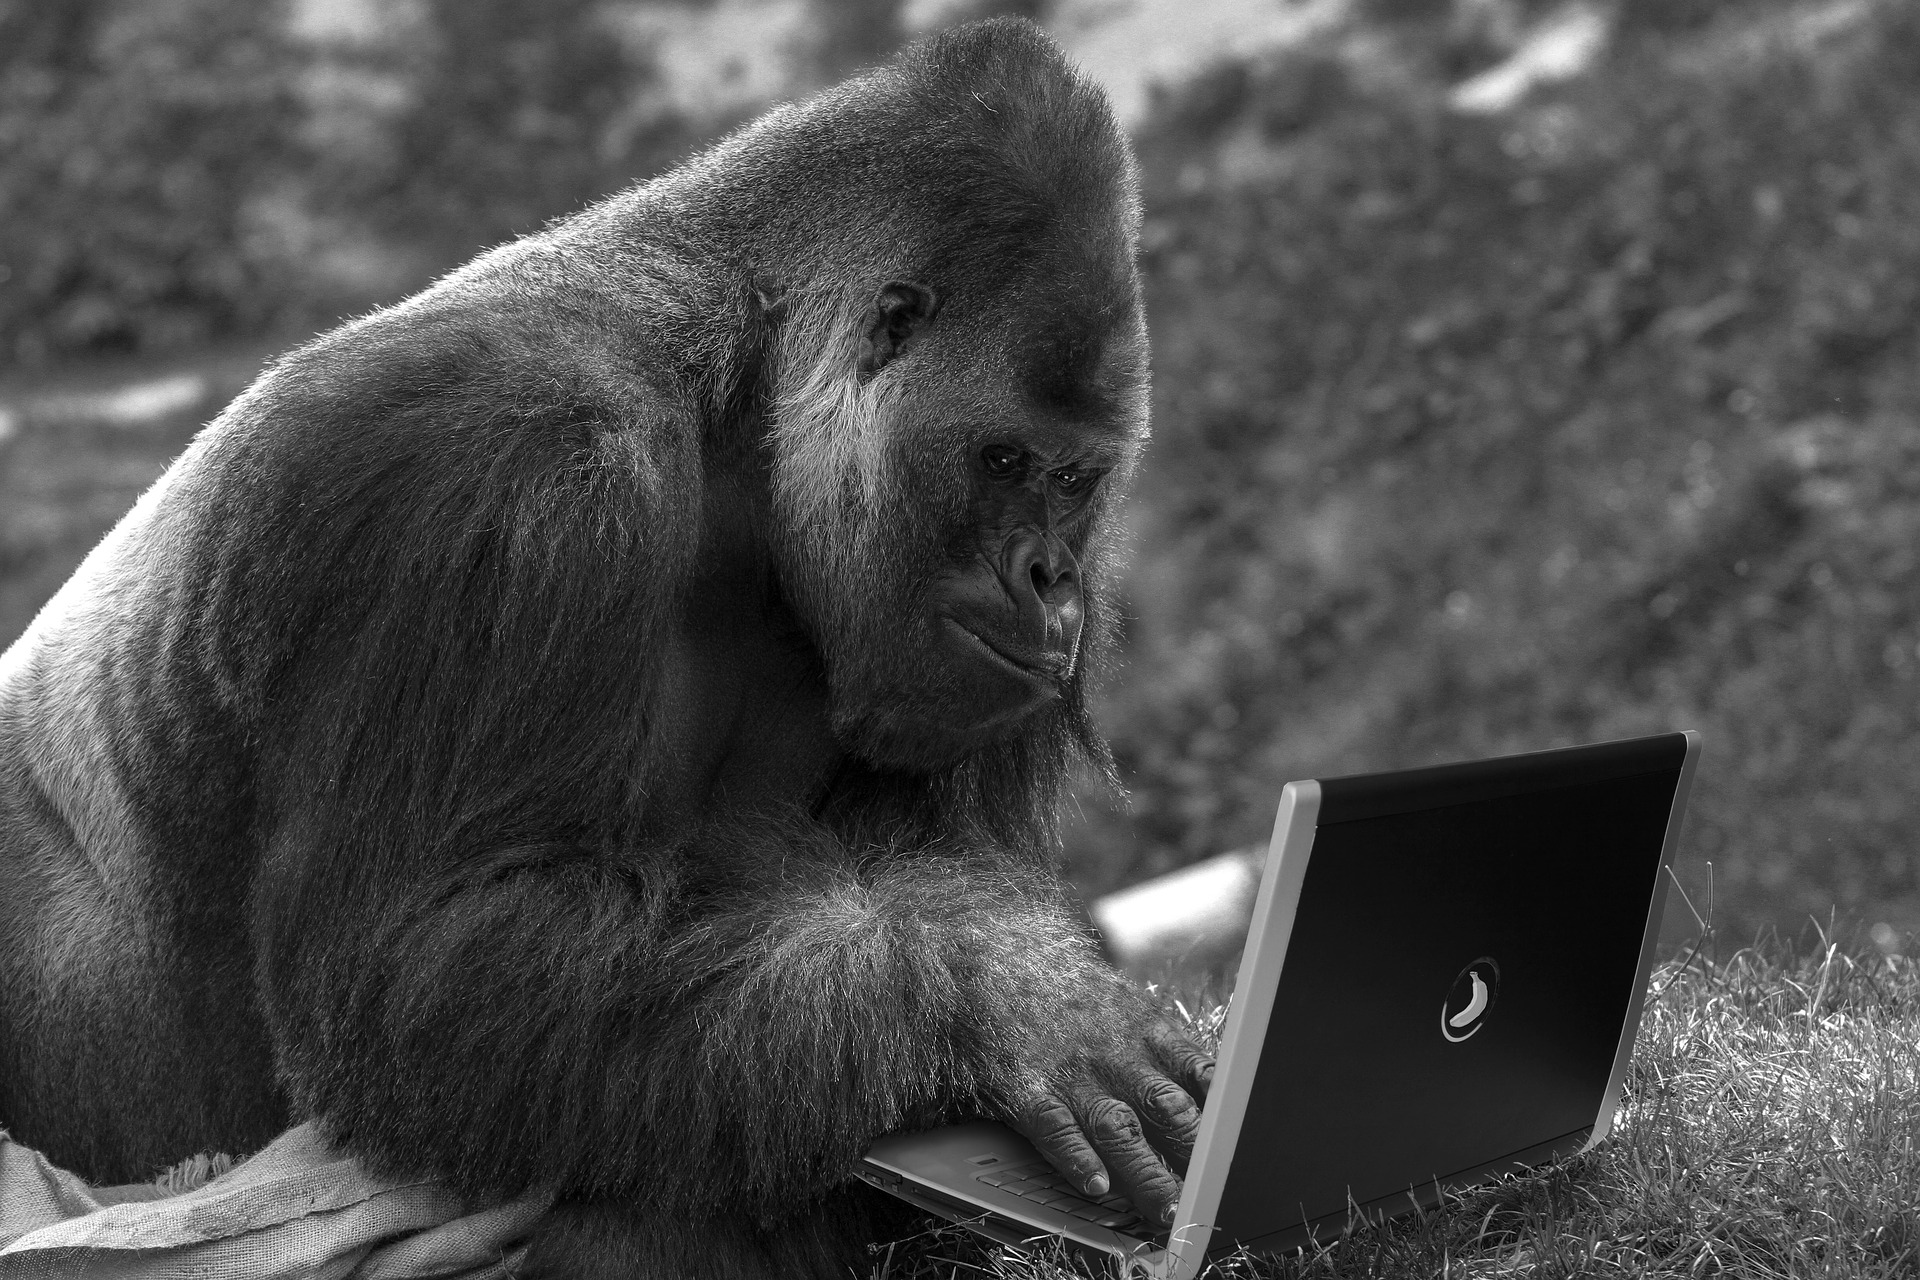 Reading, Writing, Working - Greater Ape